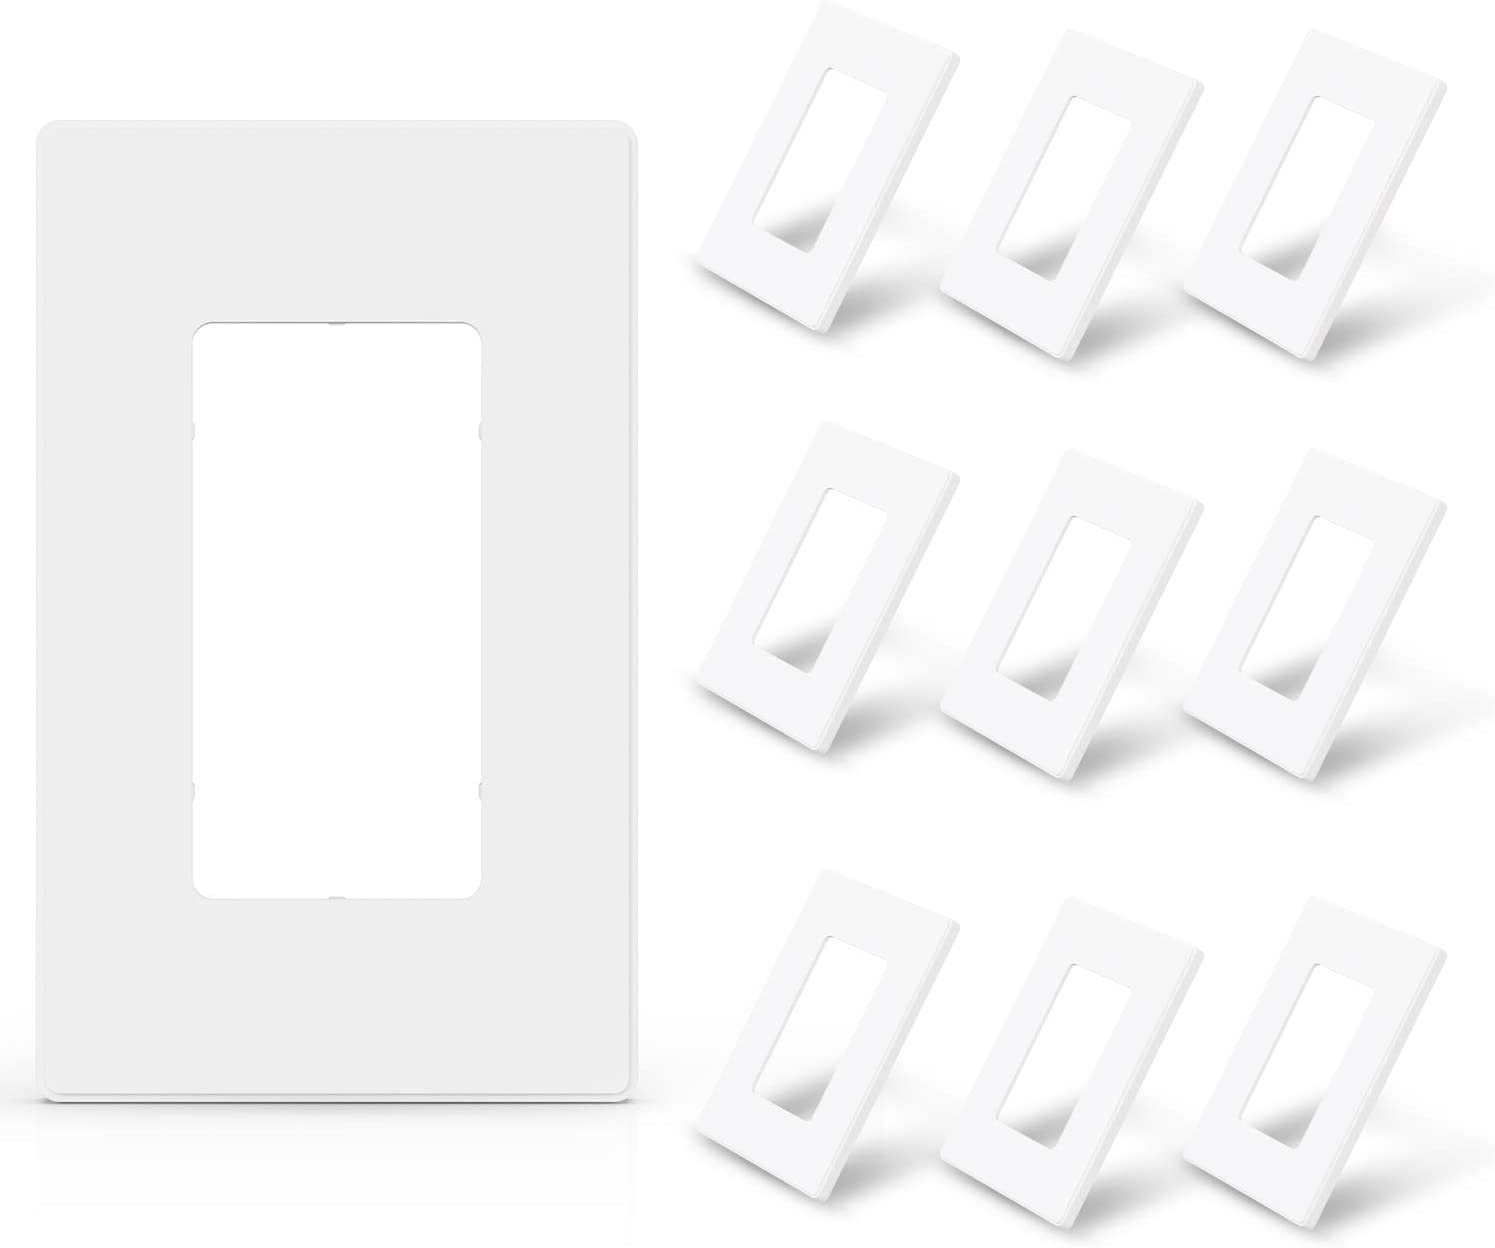 ELEGRP 1-Gang Screwless Decorative Wall Plates, Standard Size Unbreakable Thermoplastic Faceplate Cover for Decorator Receptacle Outlet Switch, UL Listed (10 Pack, Matte White)